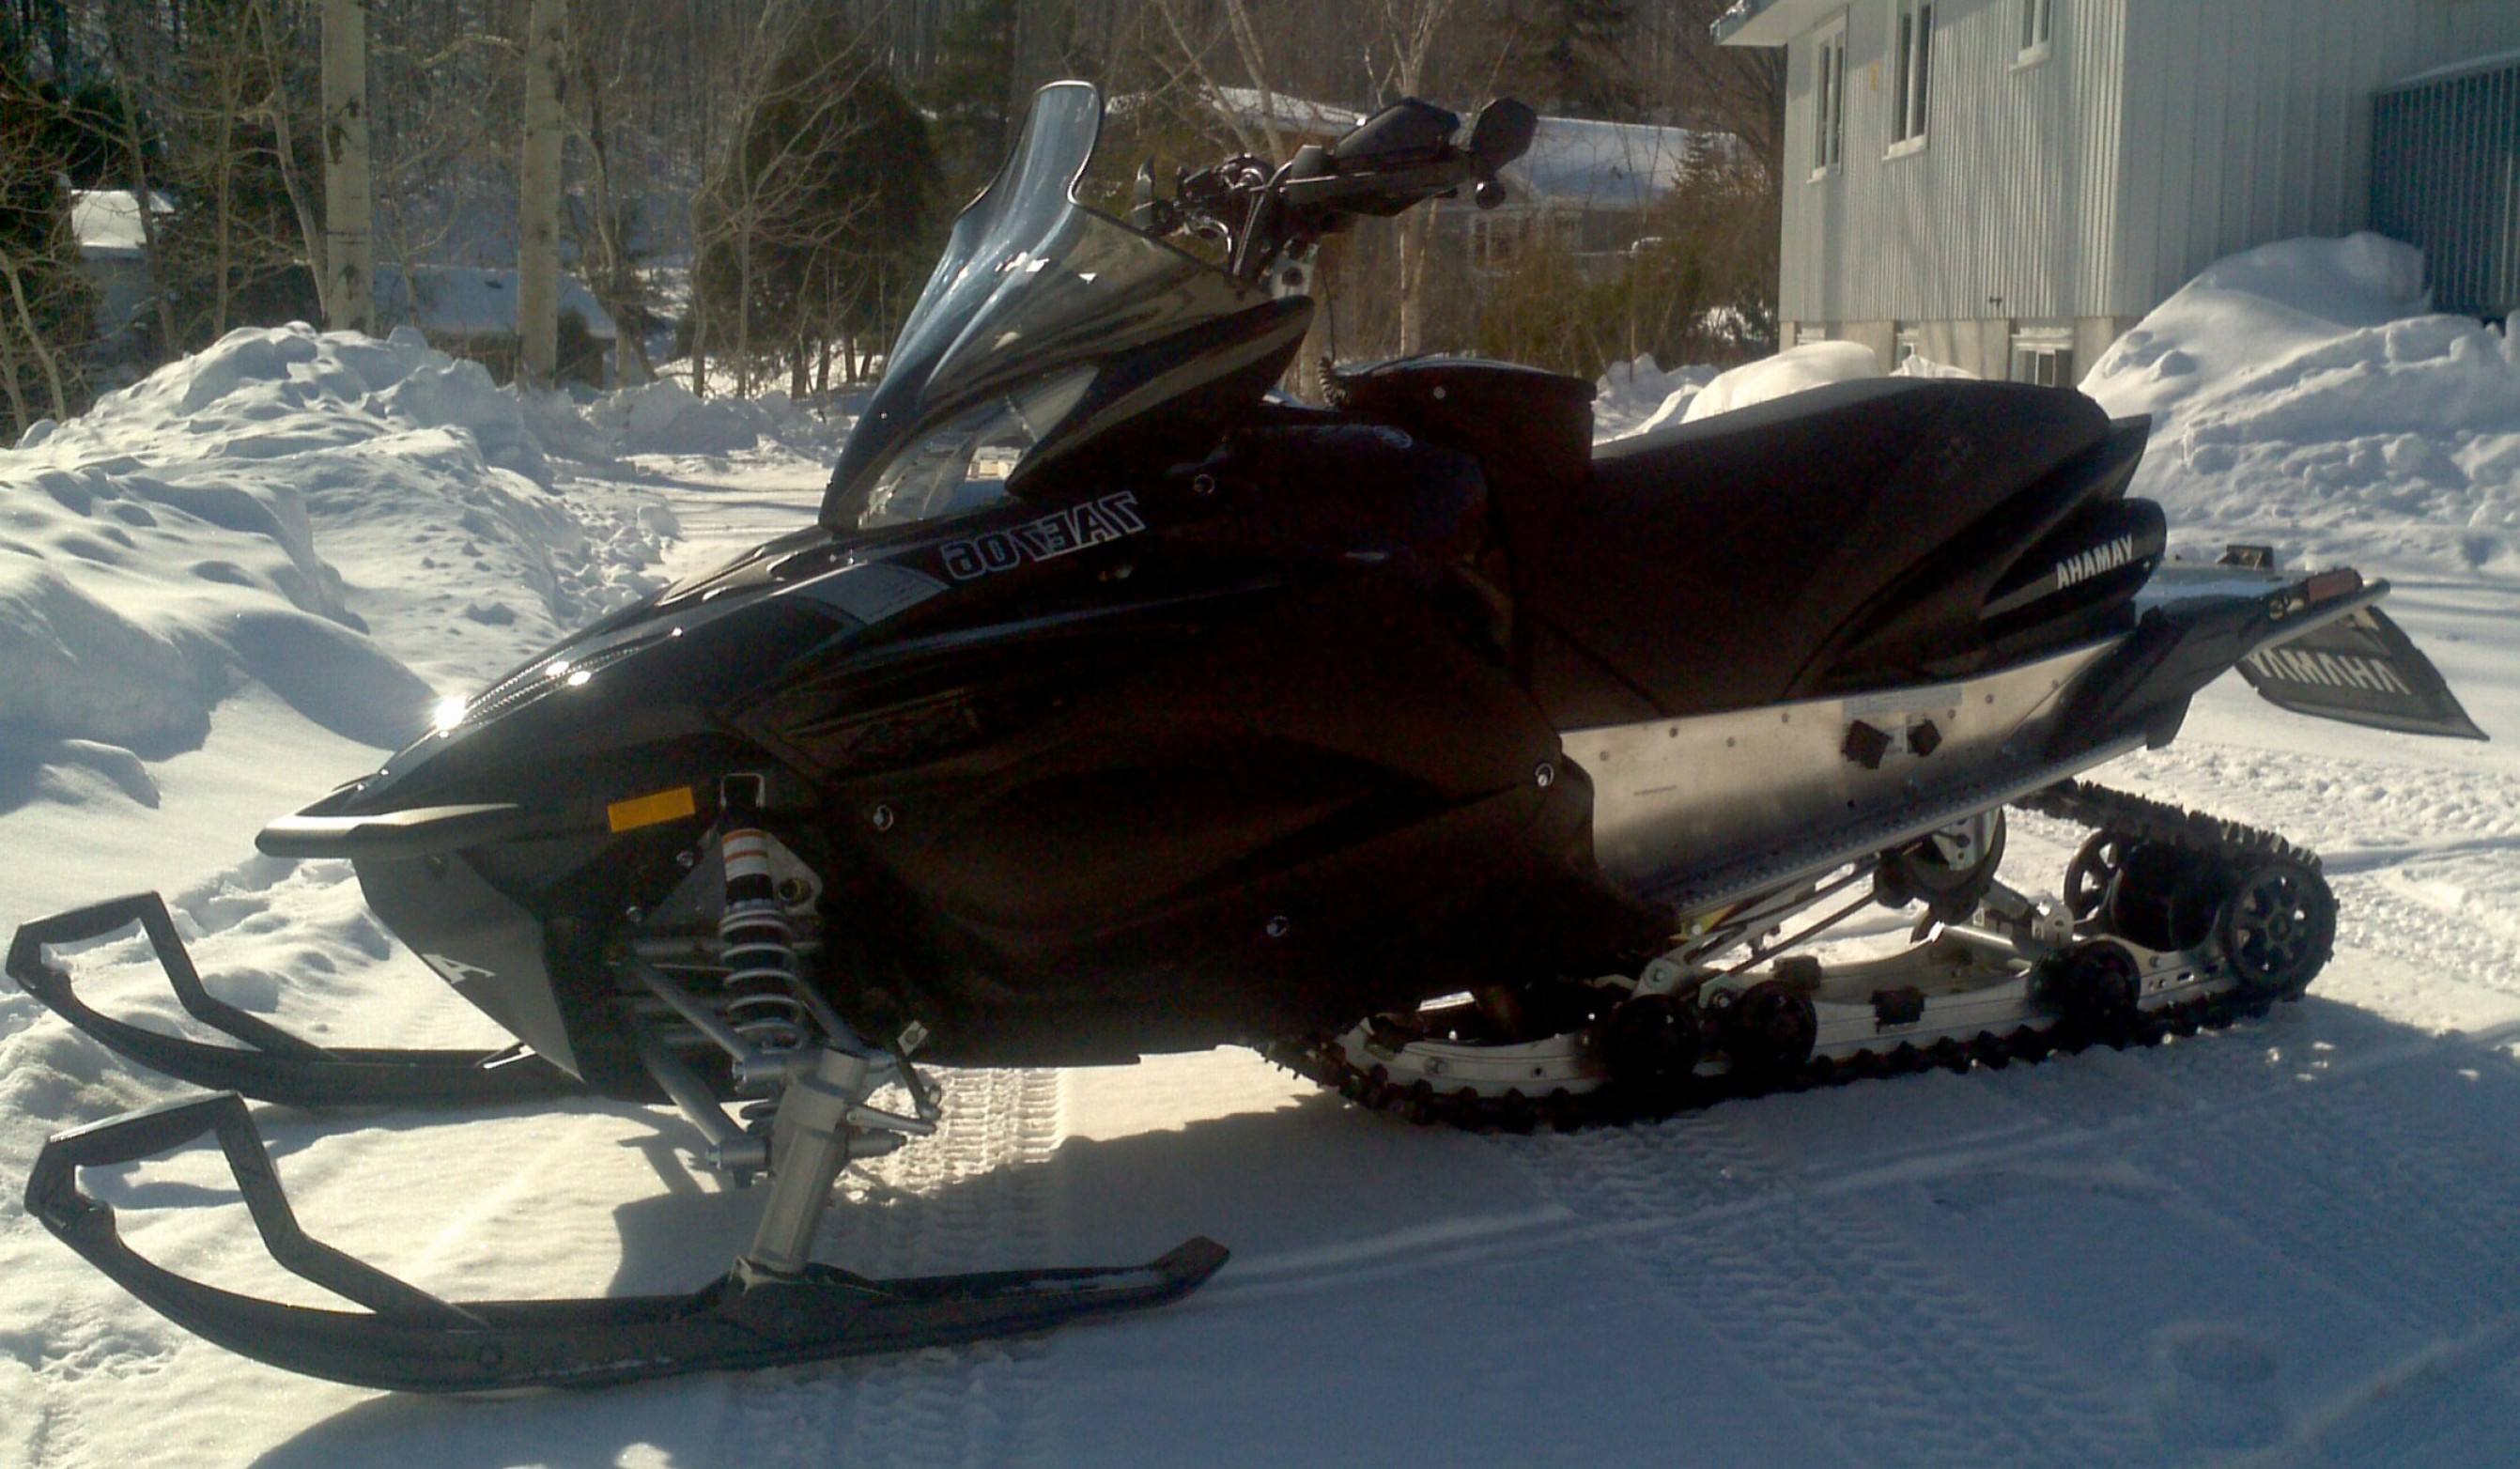 2011 Yamaha Vector Snowmobiles: New Wrp Seat Mod For Up Apex